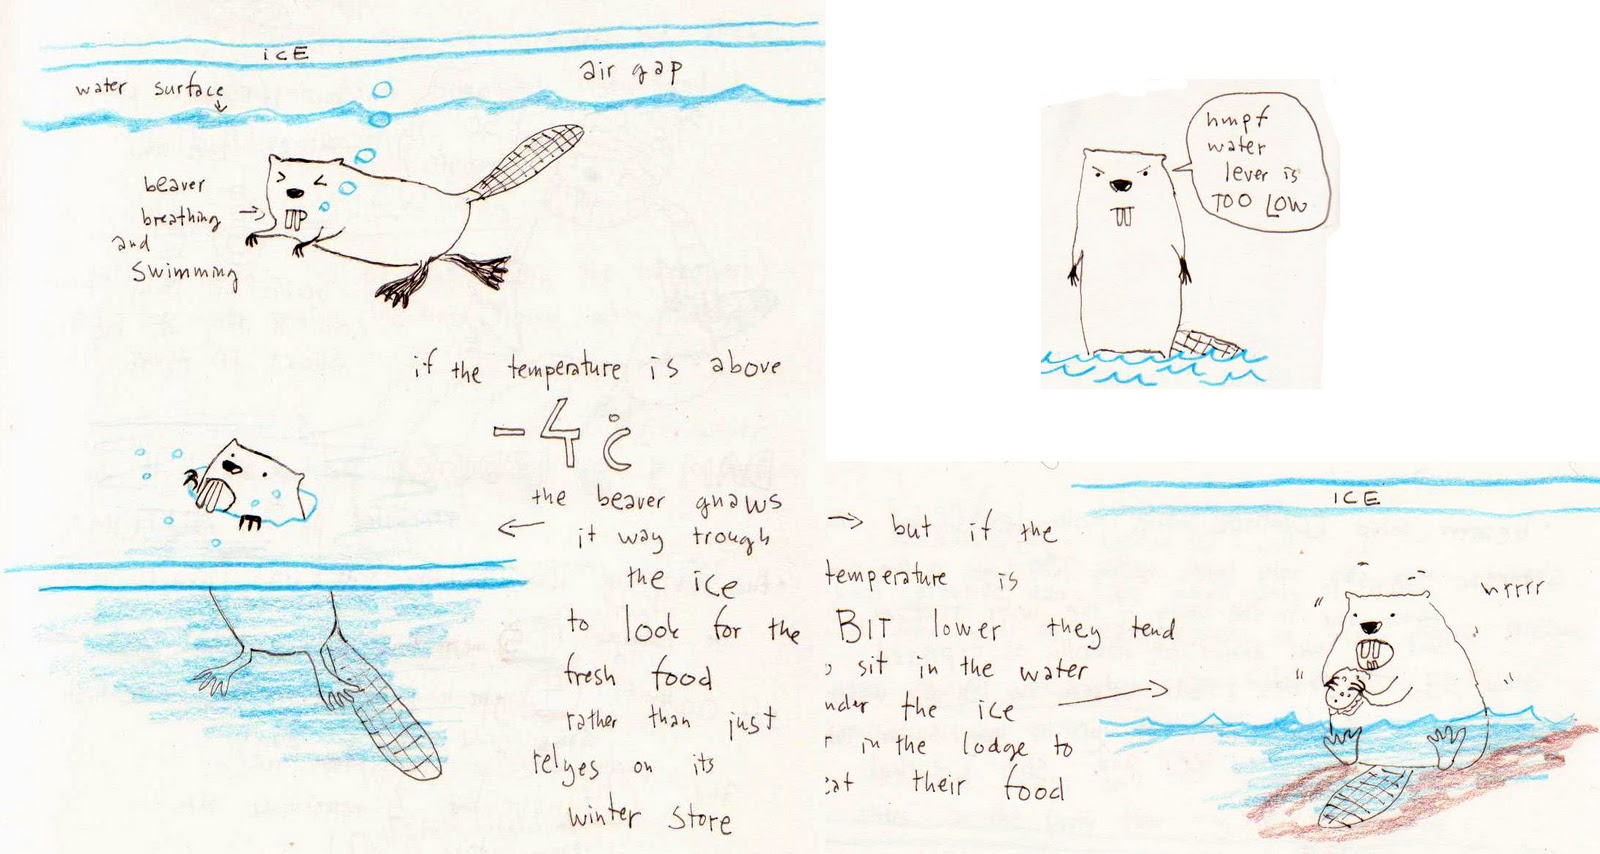 i butterflies obsessed by beavers